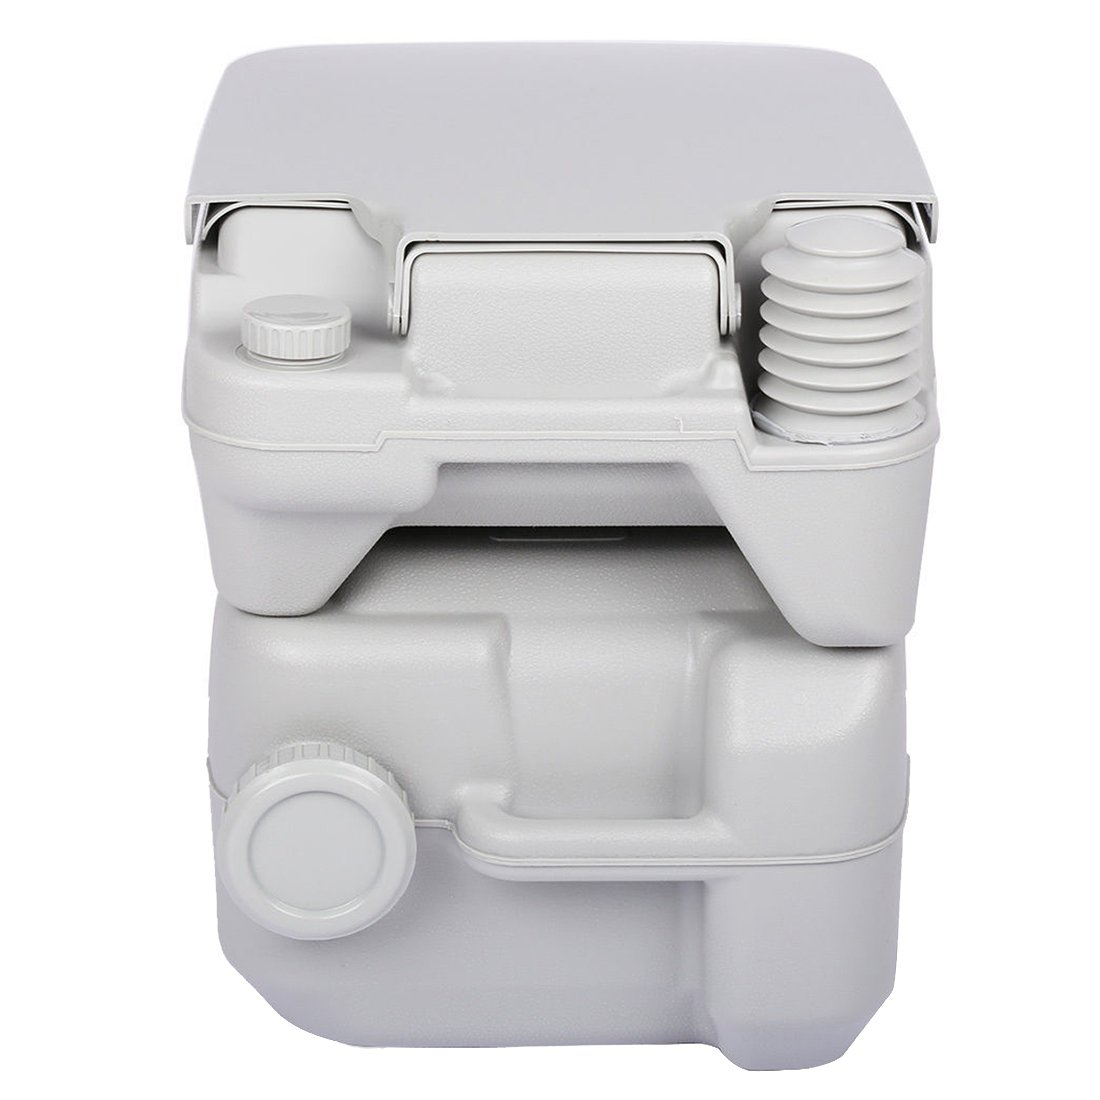 5 Gallon 20L Portable WC Toilet - TOOGOO(R) 5 Gallon 20L Portable WC Toilet Flush Camping Porta Travel Outdoor Hiking Potty by TOOGOO(R) (Image #4)